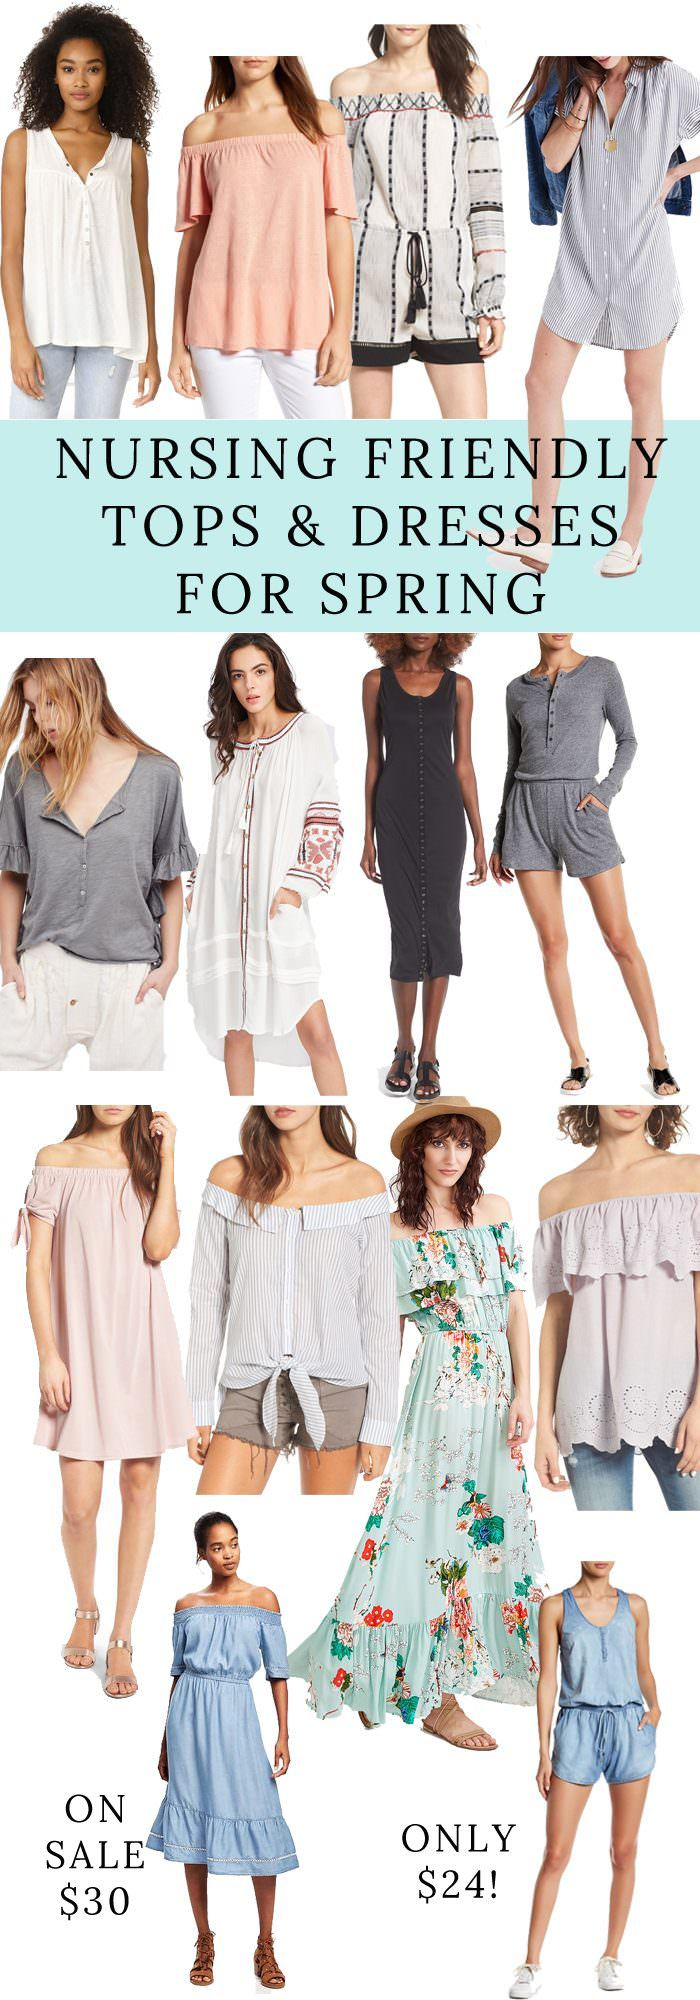 Are you currently nursing and trying to stay stylish at the same time? Check out this Roundup of the Best Tops & Dresses for Breastfeeding Mamas!